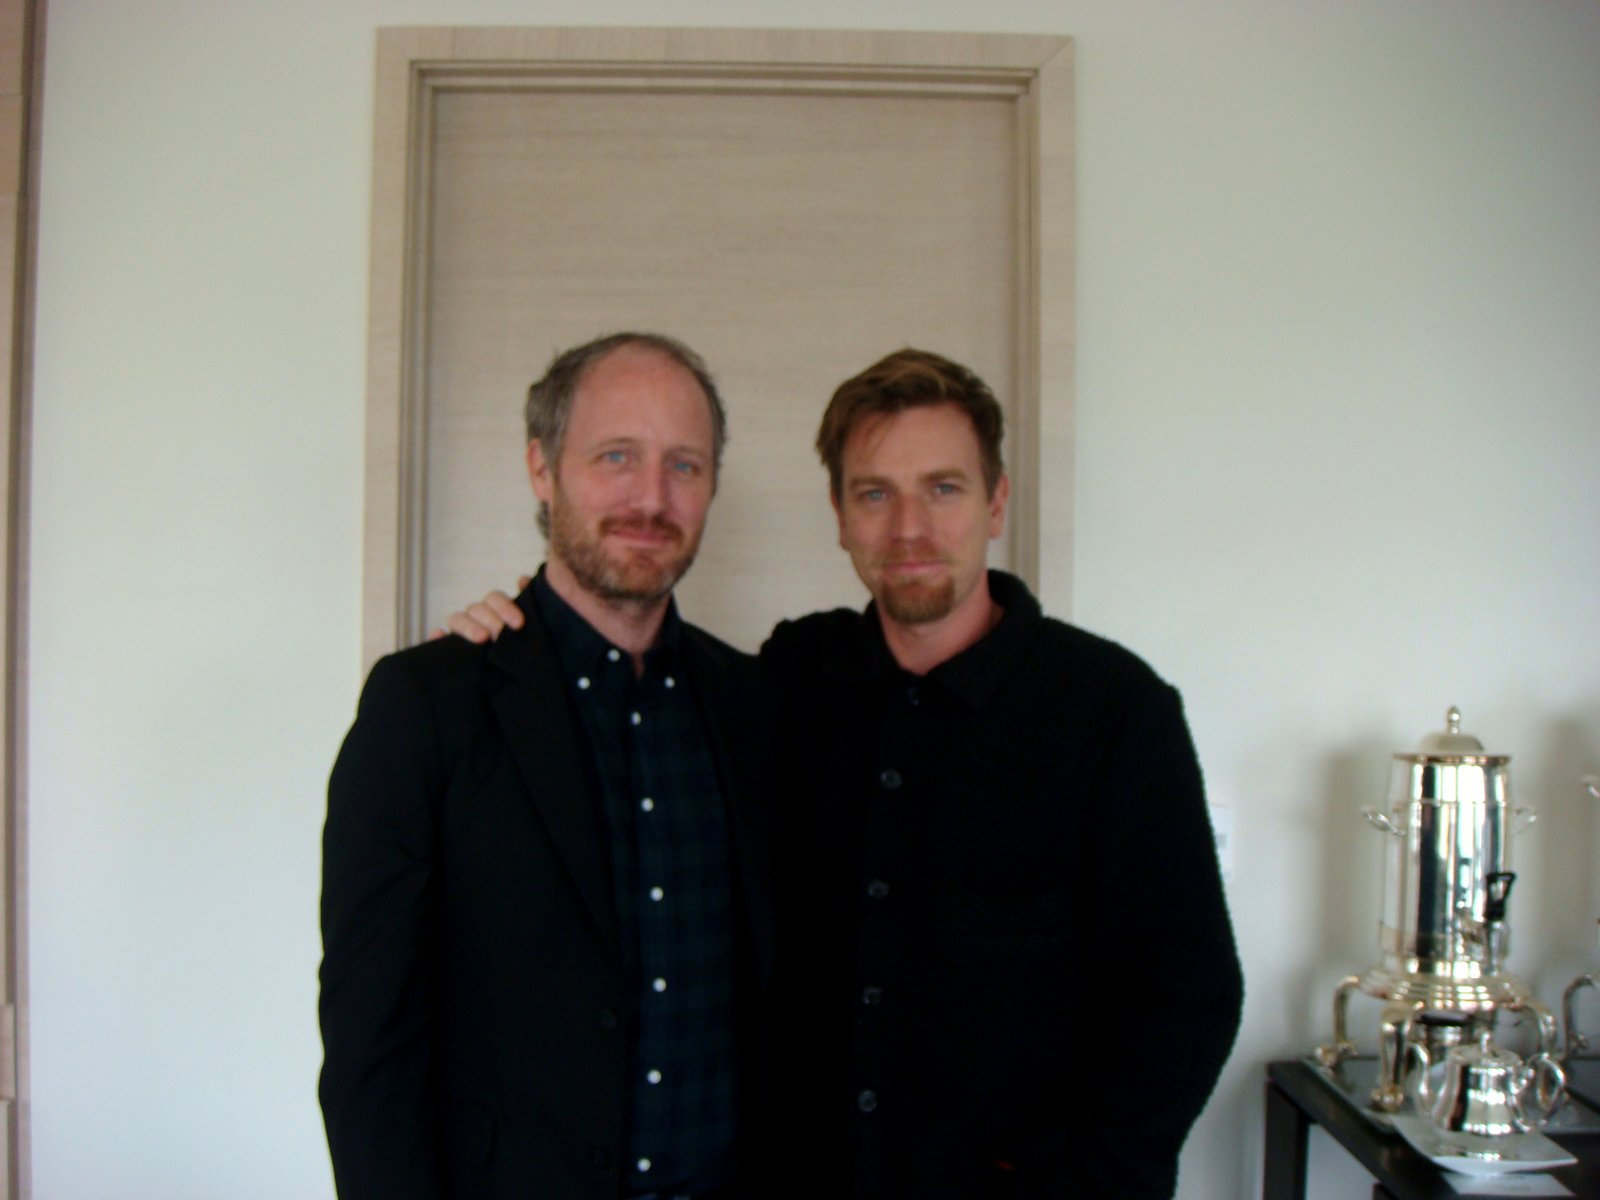 """Mike Mills and Ewan McGregor at the St. Regis Hotel in San Francisco, where our interview took place.  Photo 1 of 6 in Mike Mills and Ewan McGregor on """"Beginners"""""""